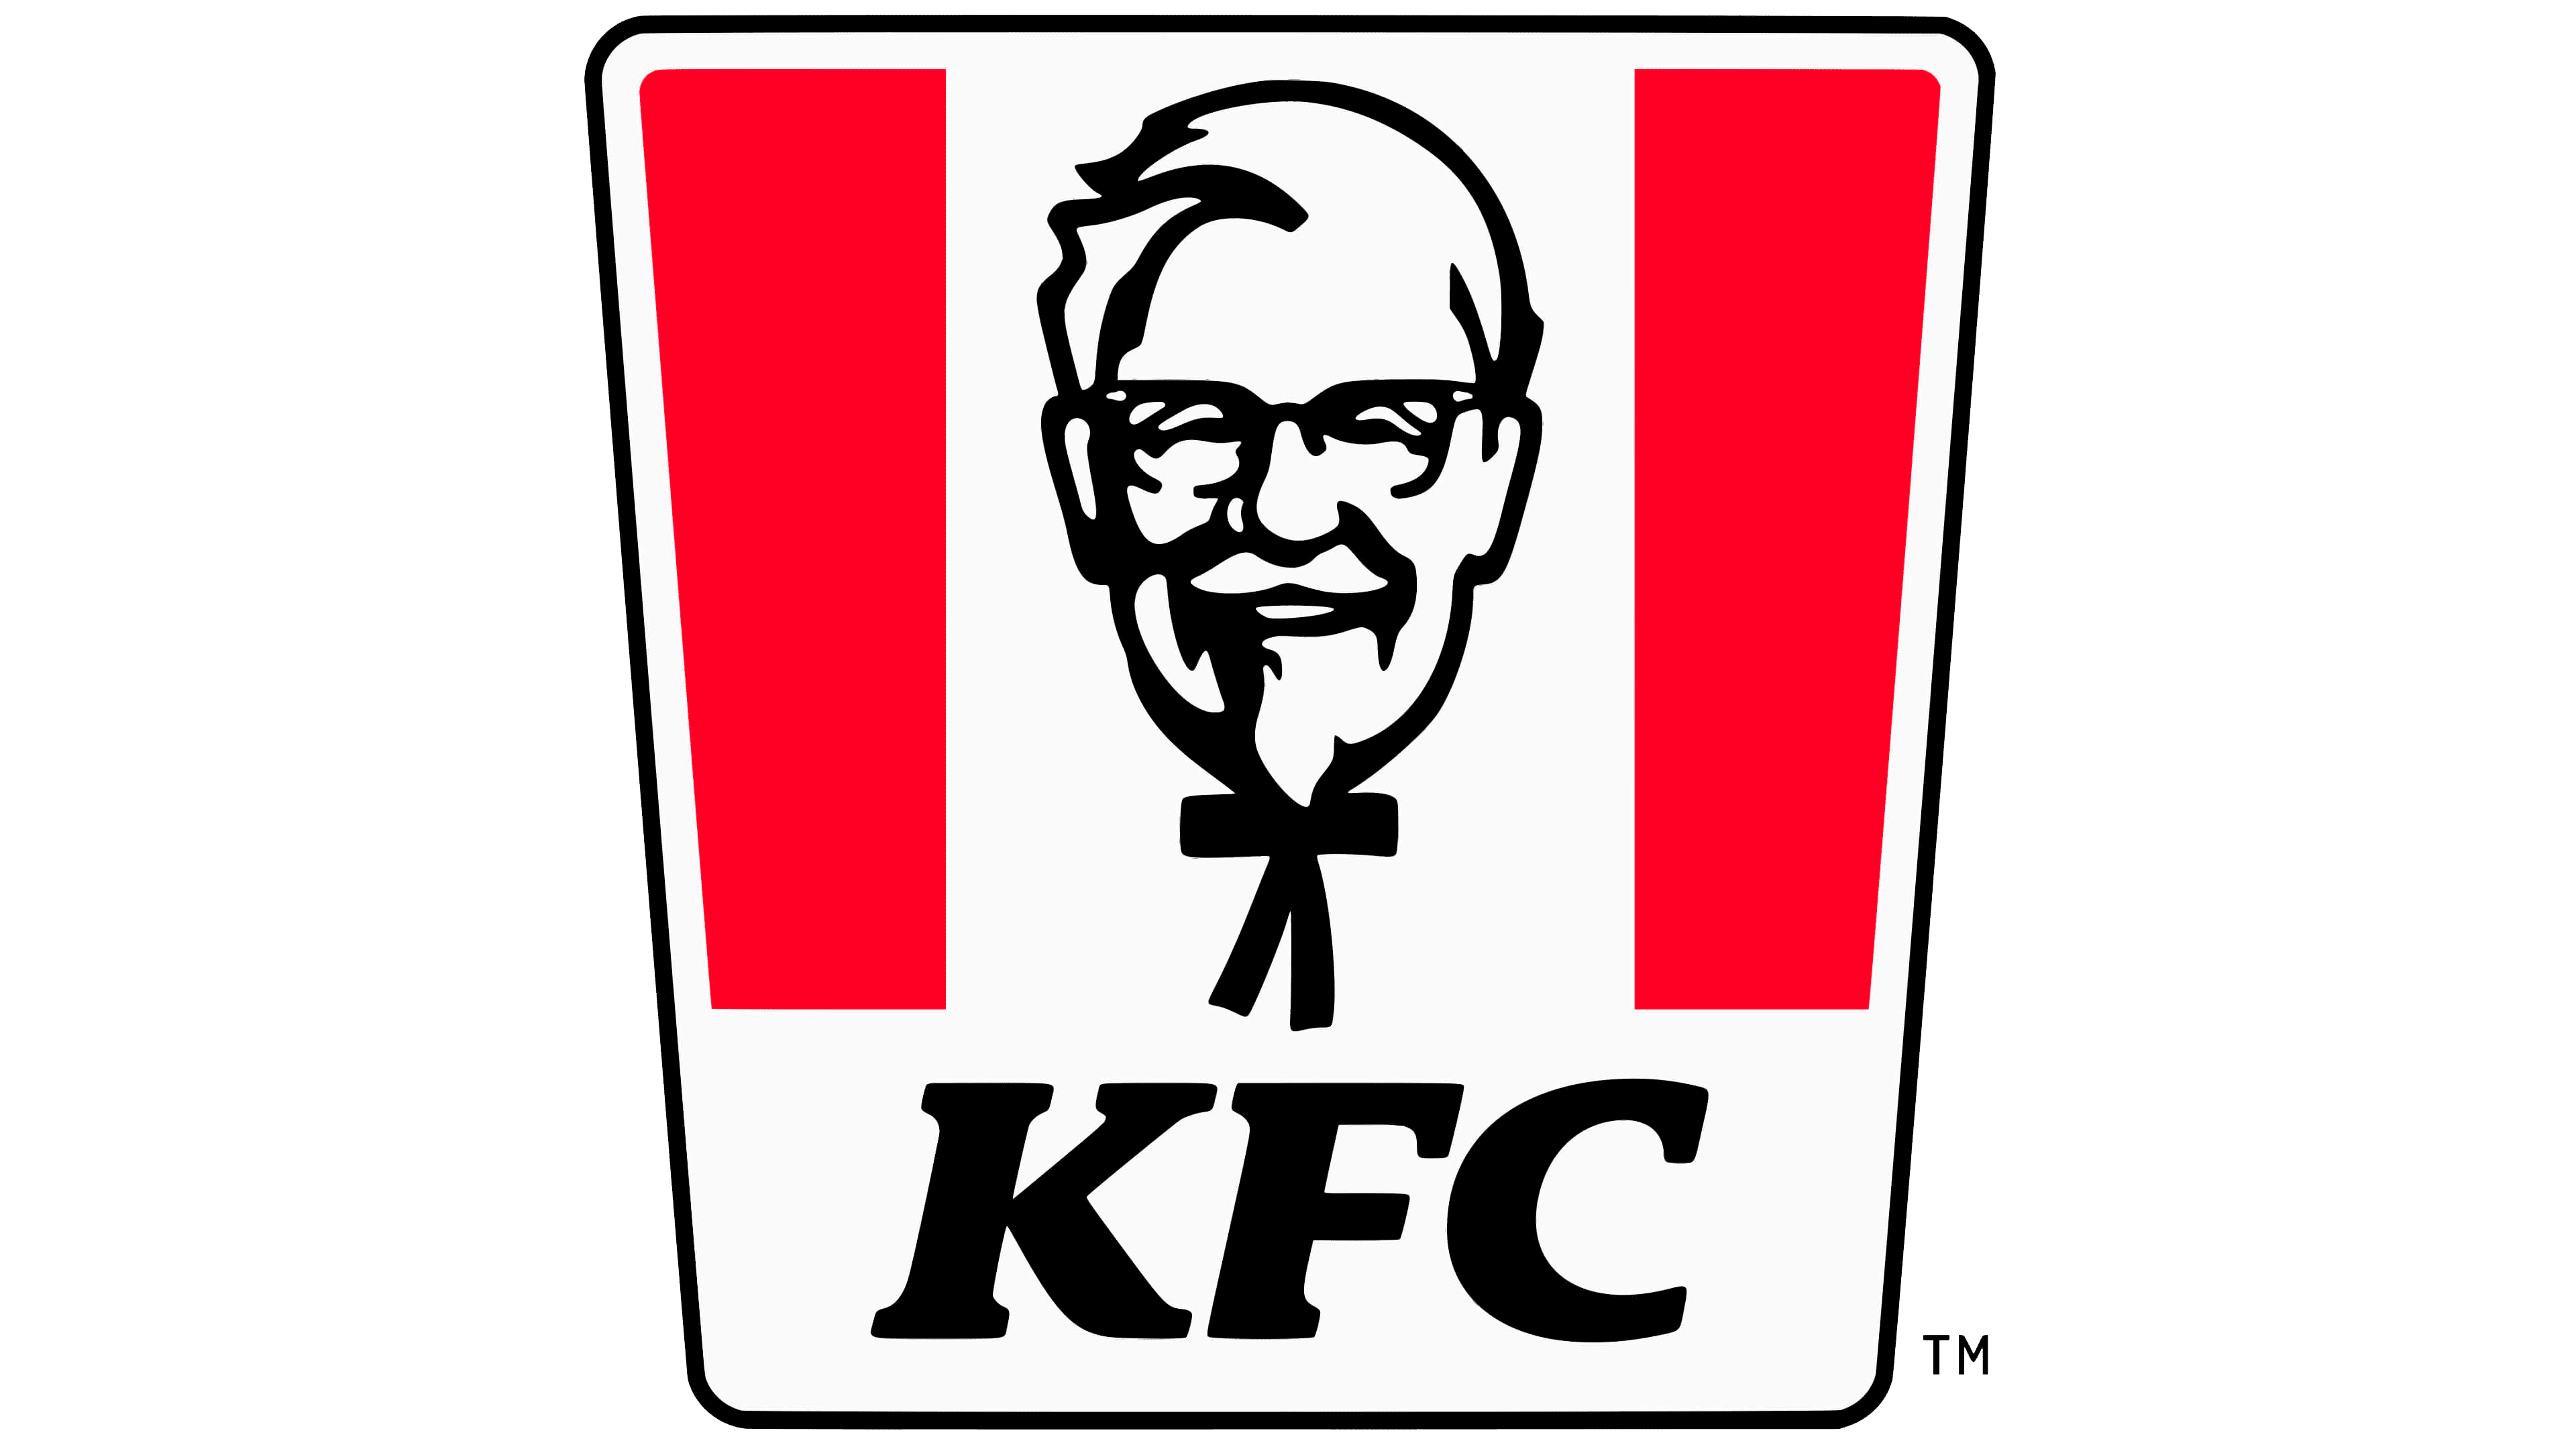 KFC was the third most mentioned food brand in Twitch chats for June